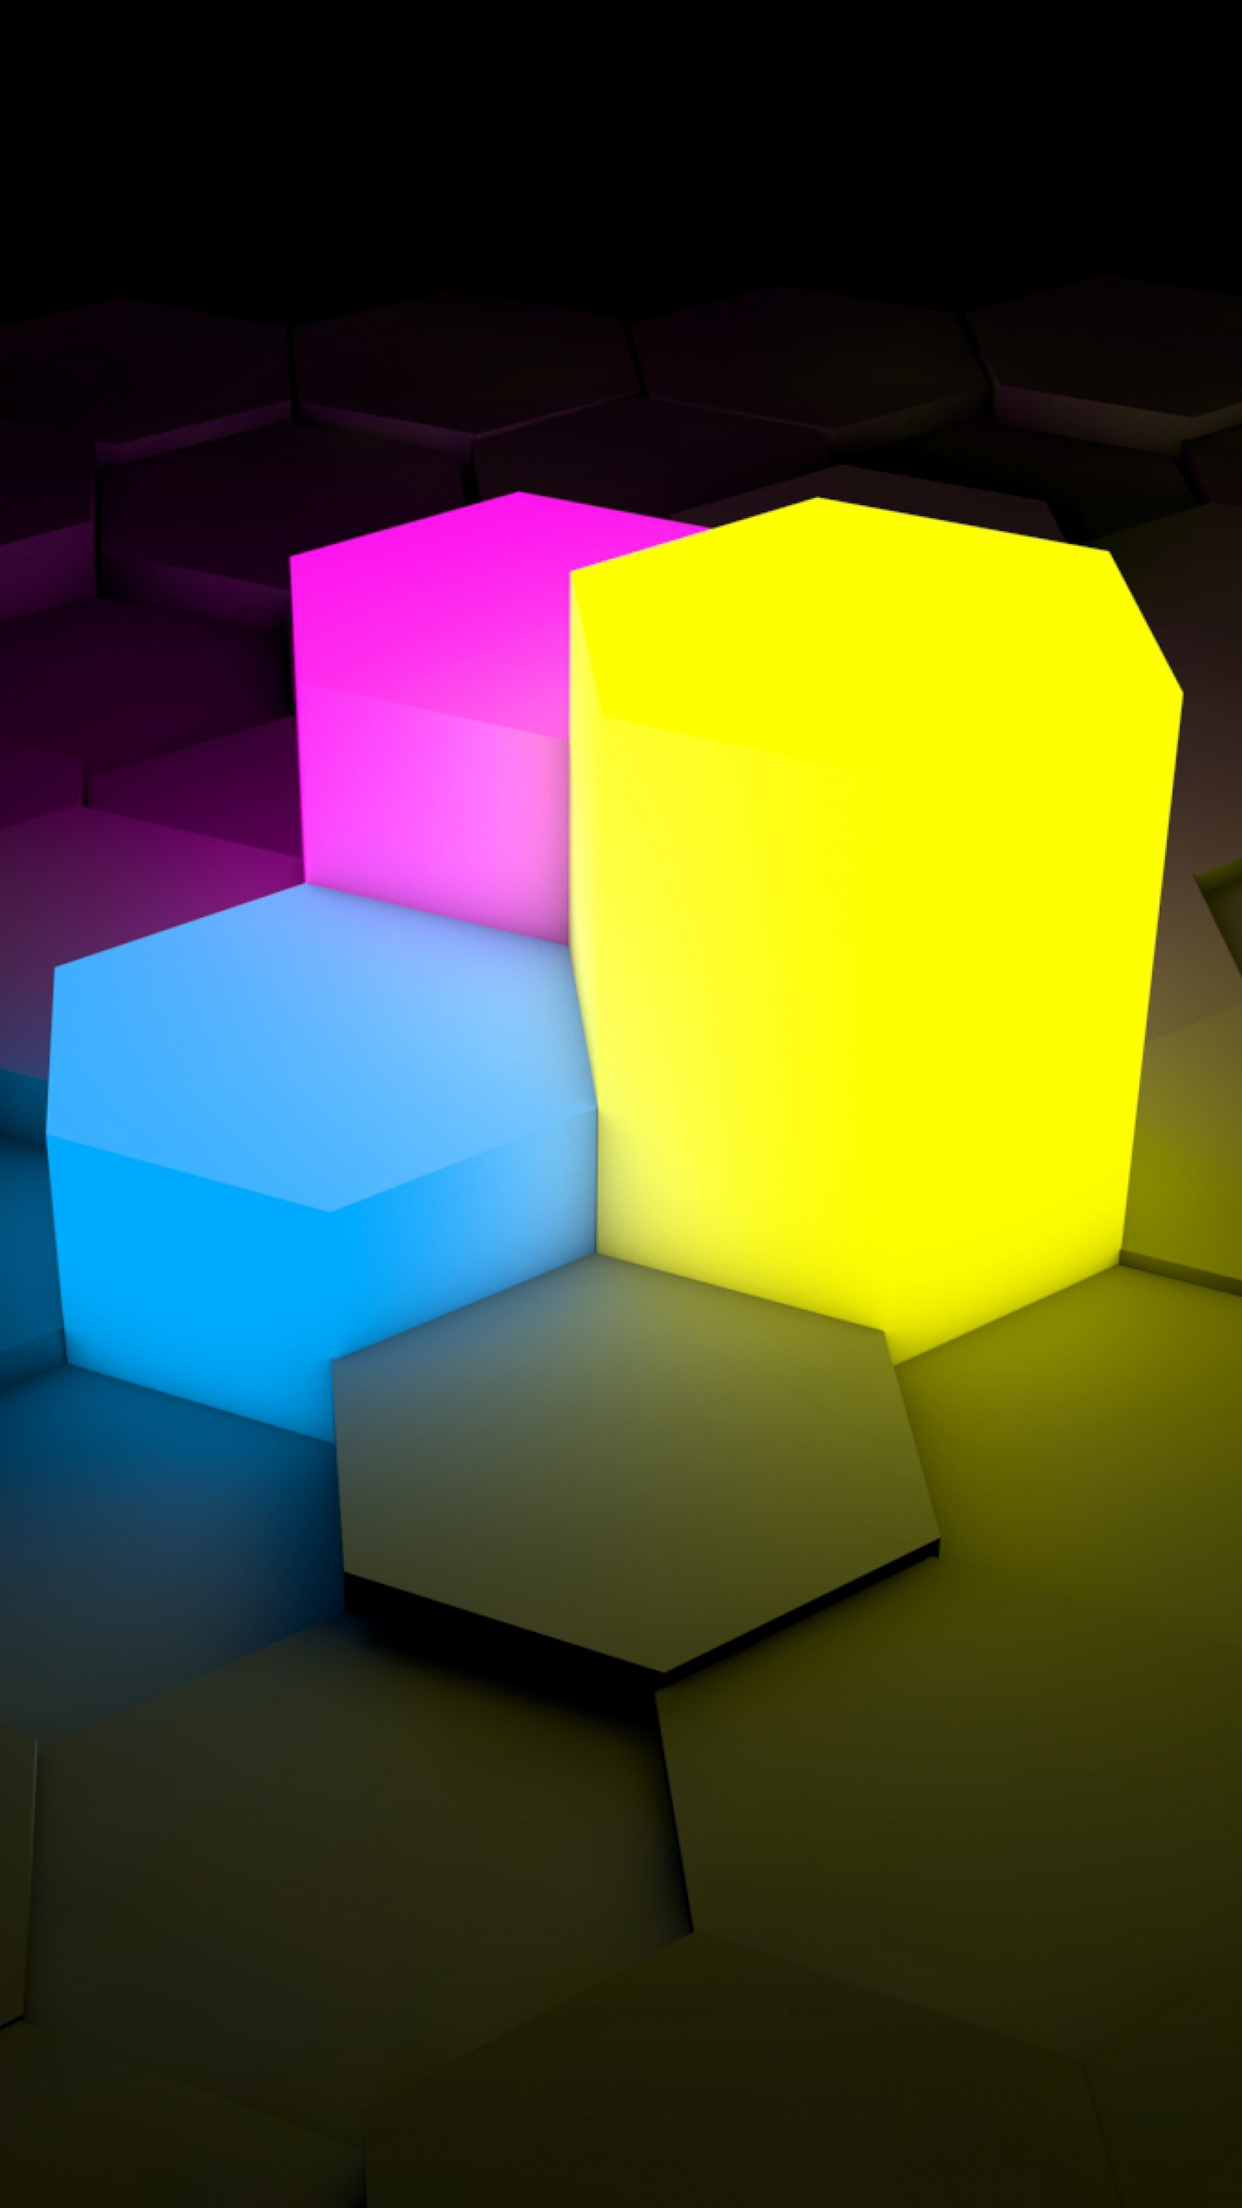 3D Picture Lights 3Wallpapers iPhone Parallax 3D Picture : Lights